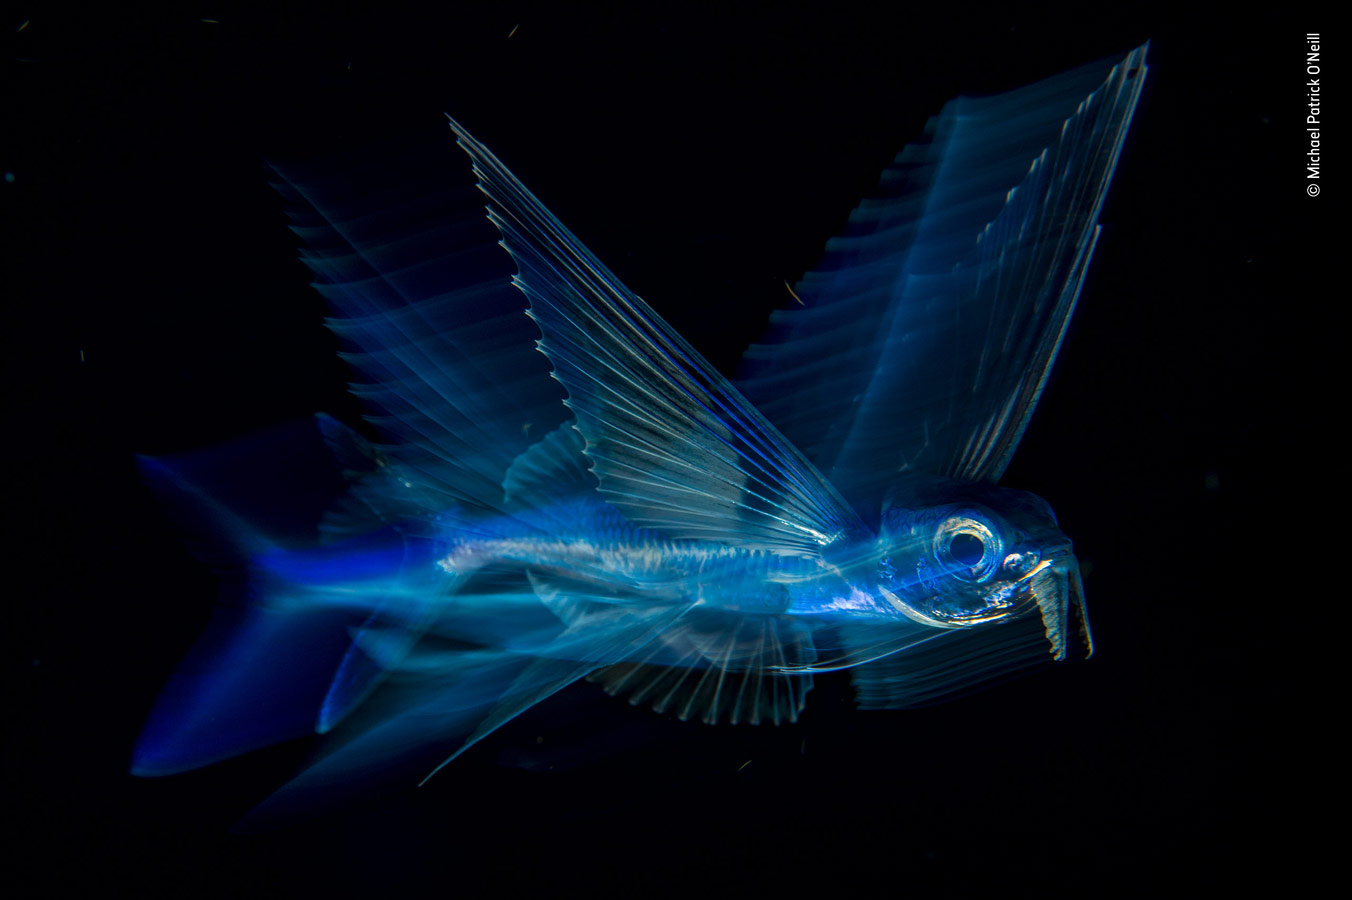 Under Water Category Winner, Night Flight, © Michael Patrick O'Neill, USA, Wildlife Photographer of the Year